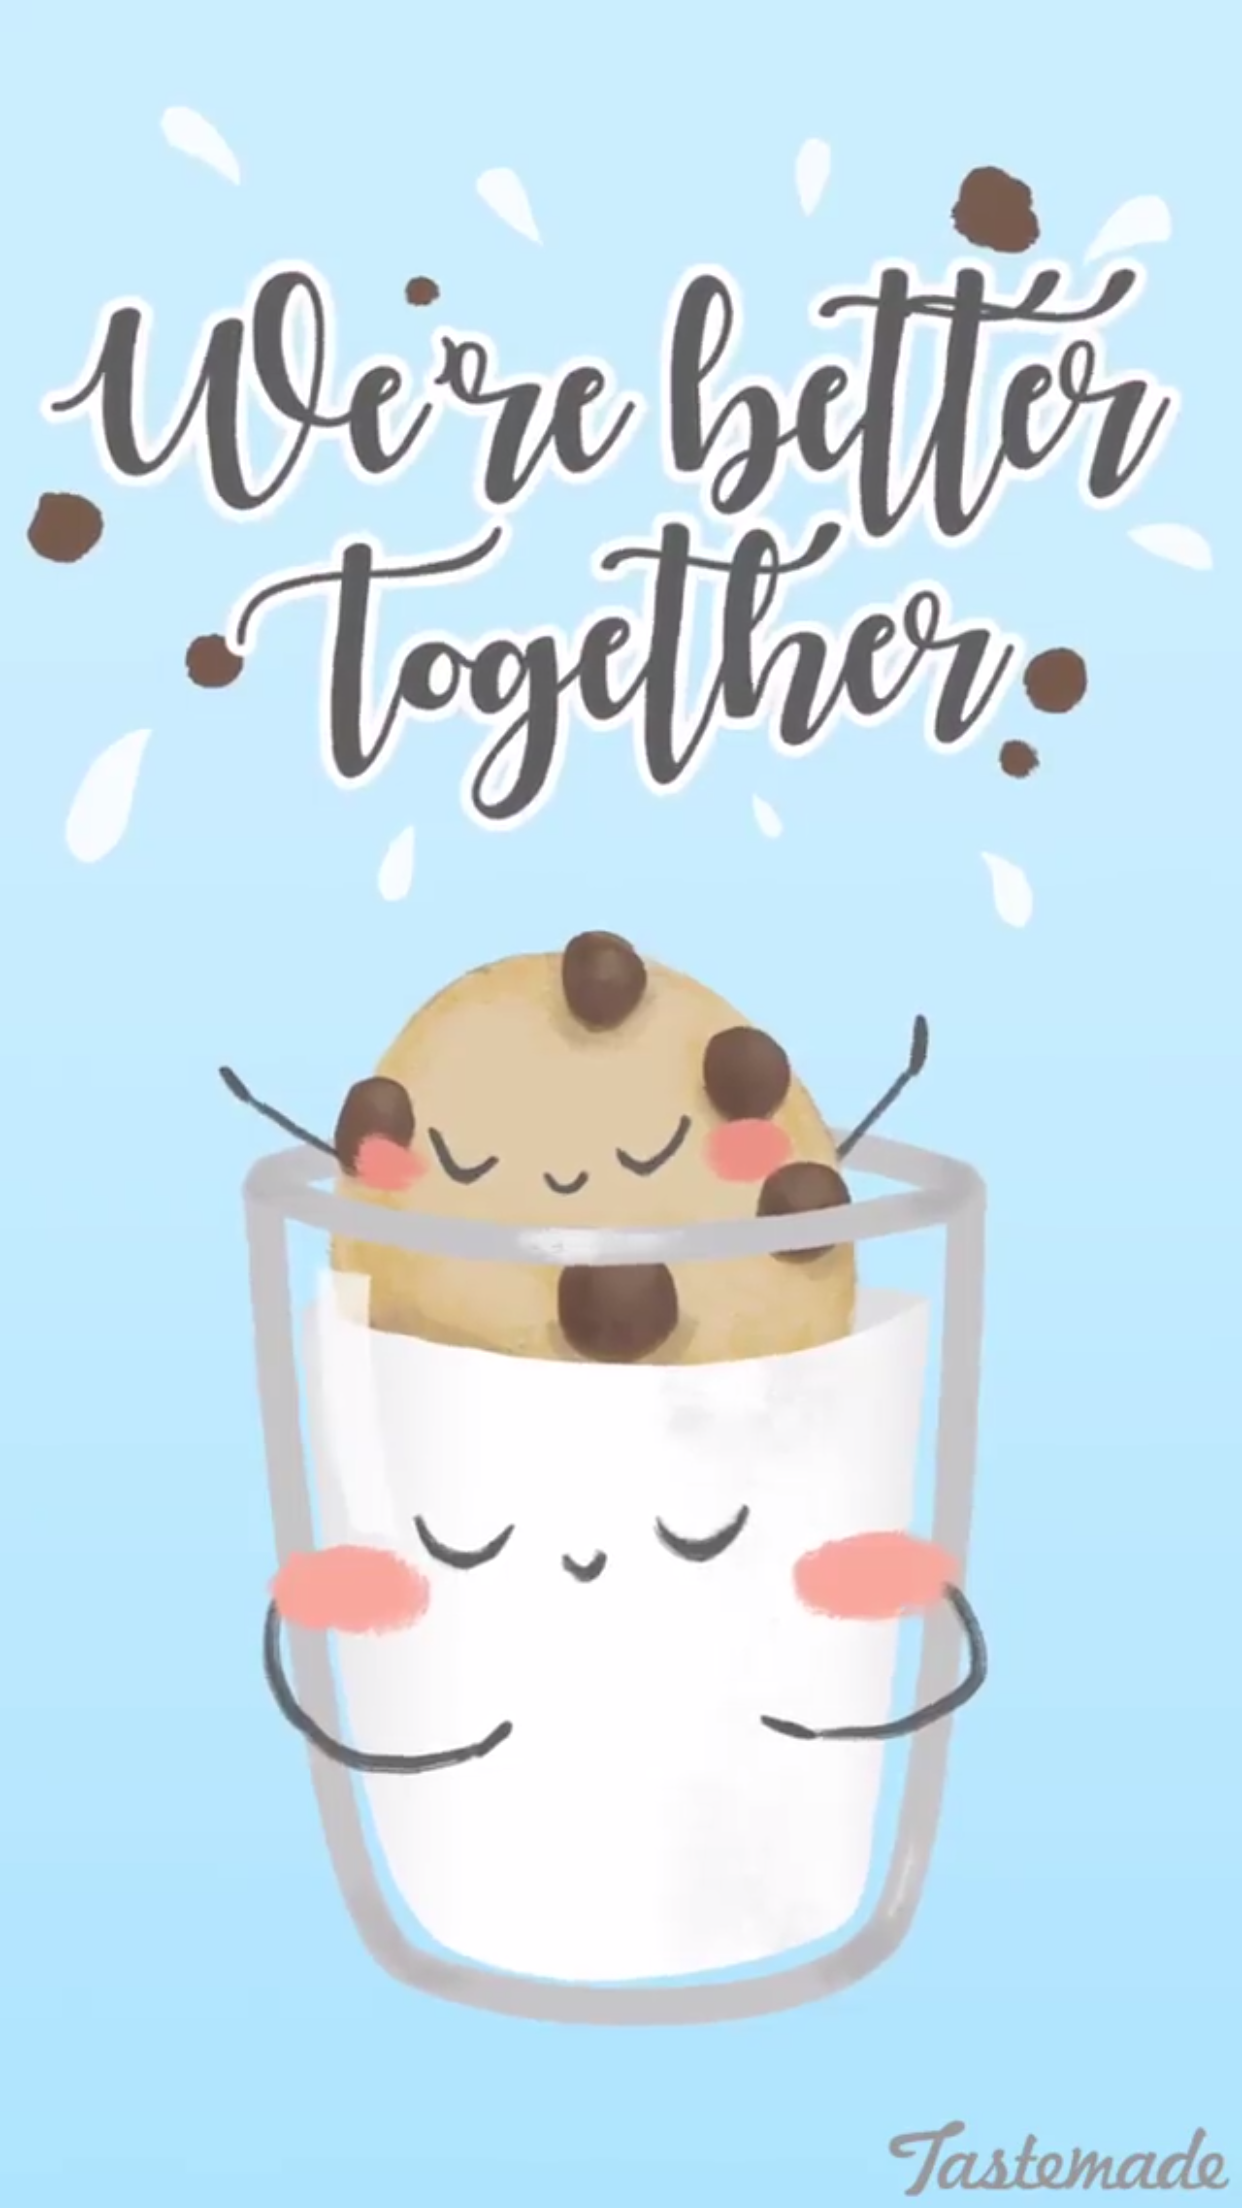 We Re Better Together Mike And Cookies Chocolate Chip Cookie Wallpaper Background Lock Screen For Cellphone Iphone Andr Funny Food Puns Funny Puns Cute Puns